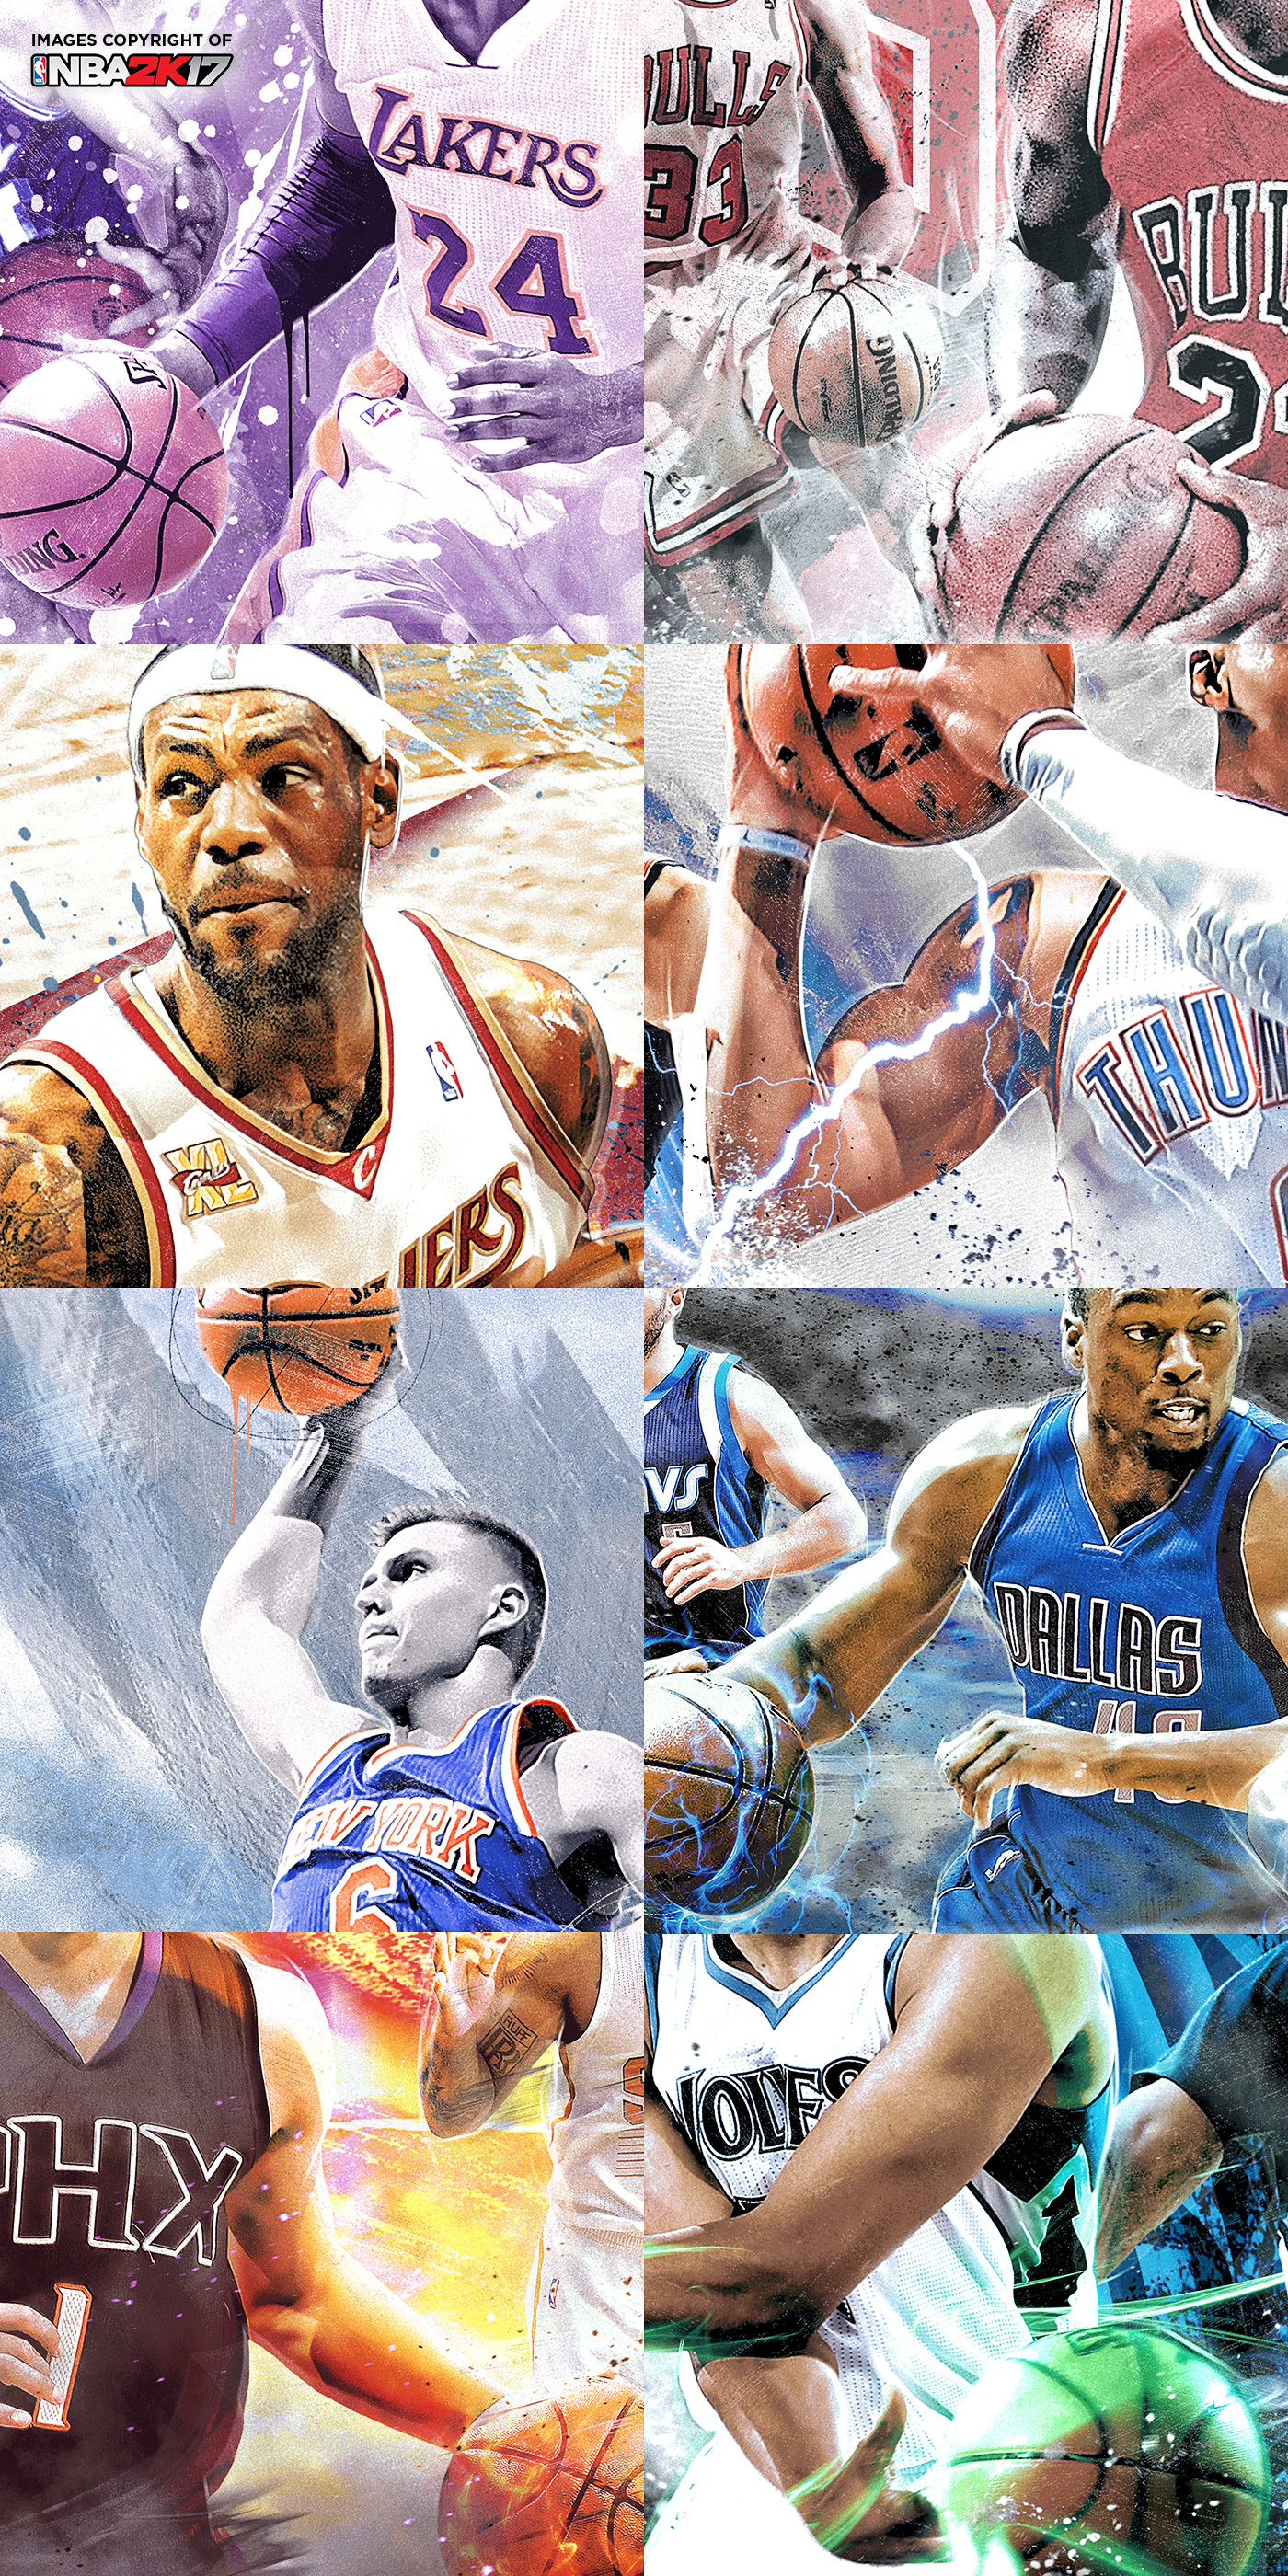 Nba 2k17 mycourt murals on behance please enjoy and for those whove been playing the game let me know which mural youre using amipublicfo Image collections